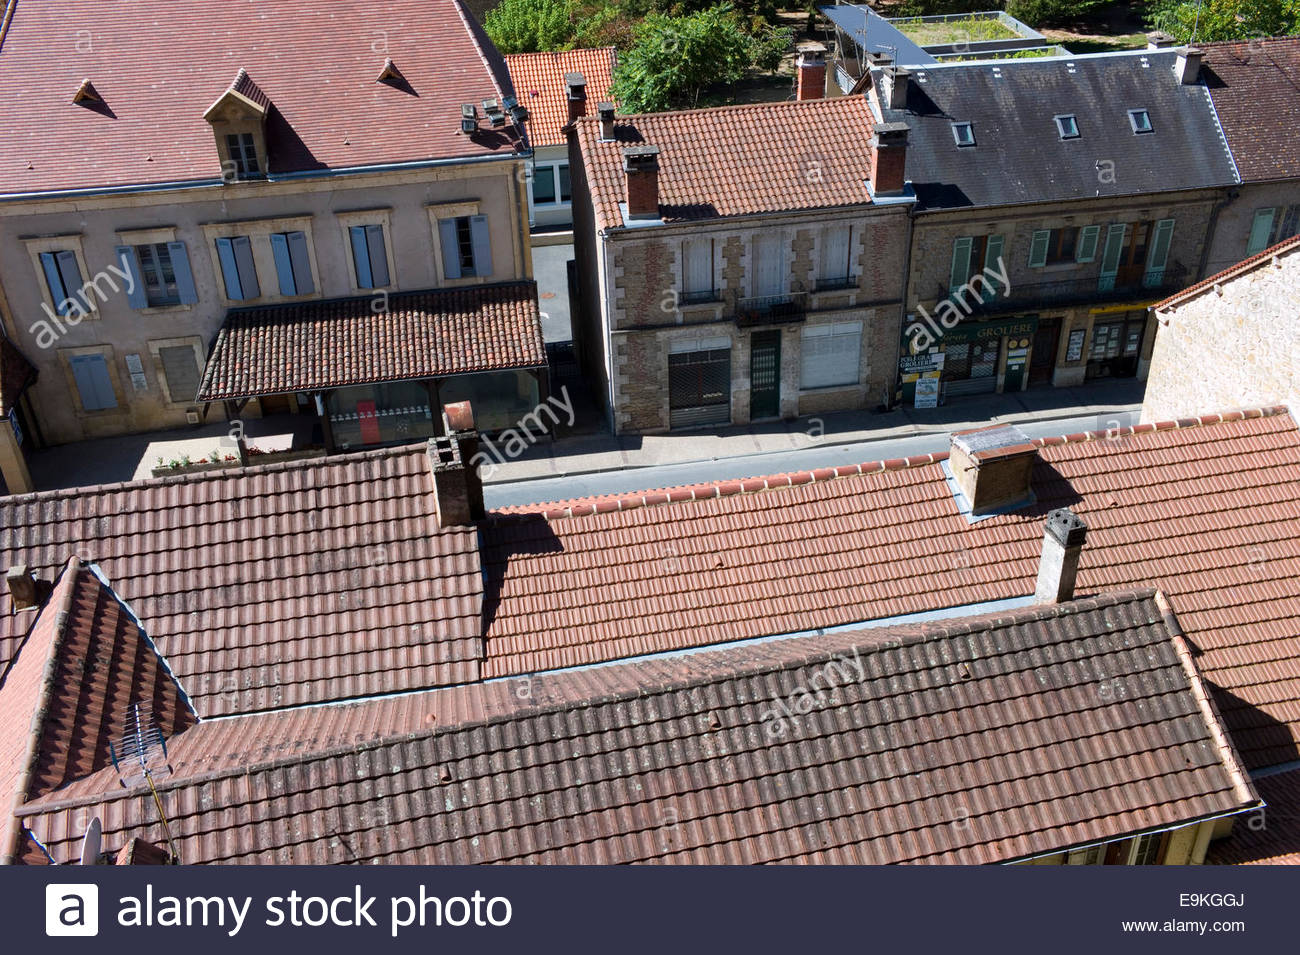 Tiled roofs in the town of Les Eyzies de Tayac En Perigord, Dordogne, France - Stock Image